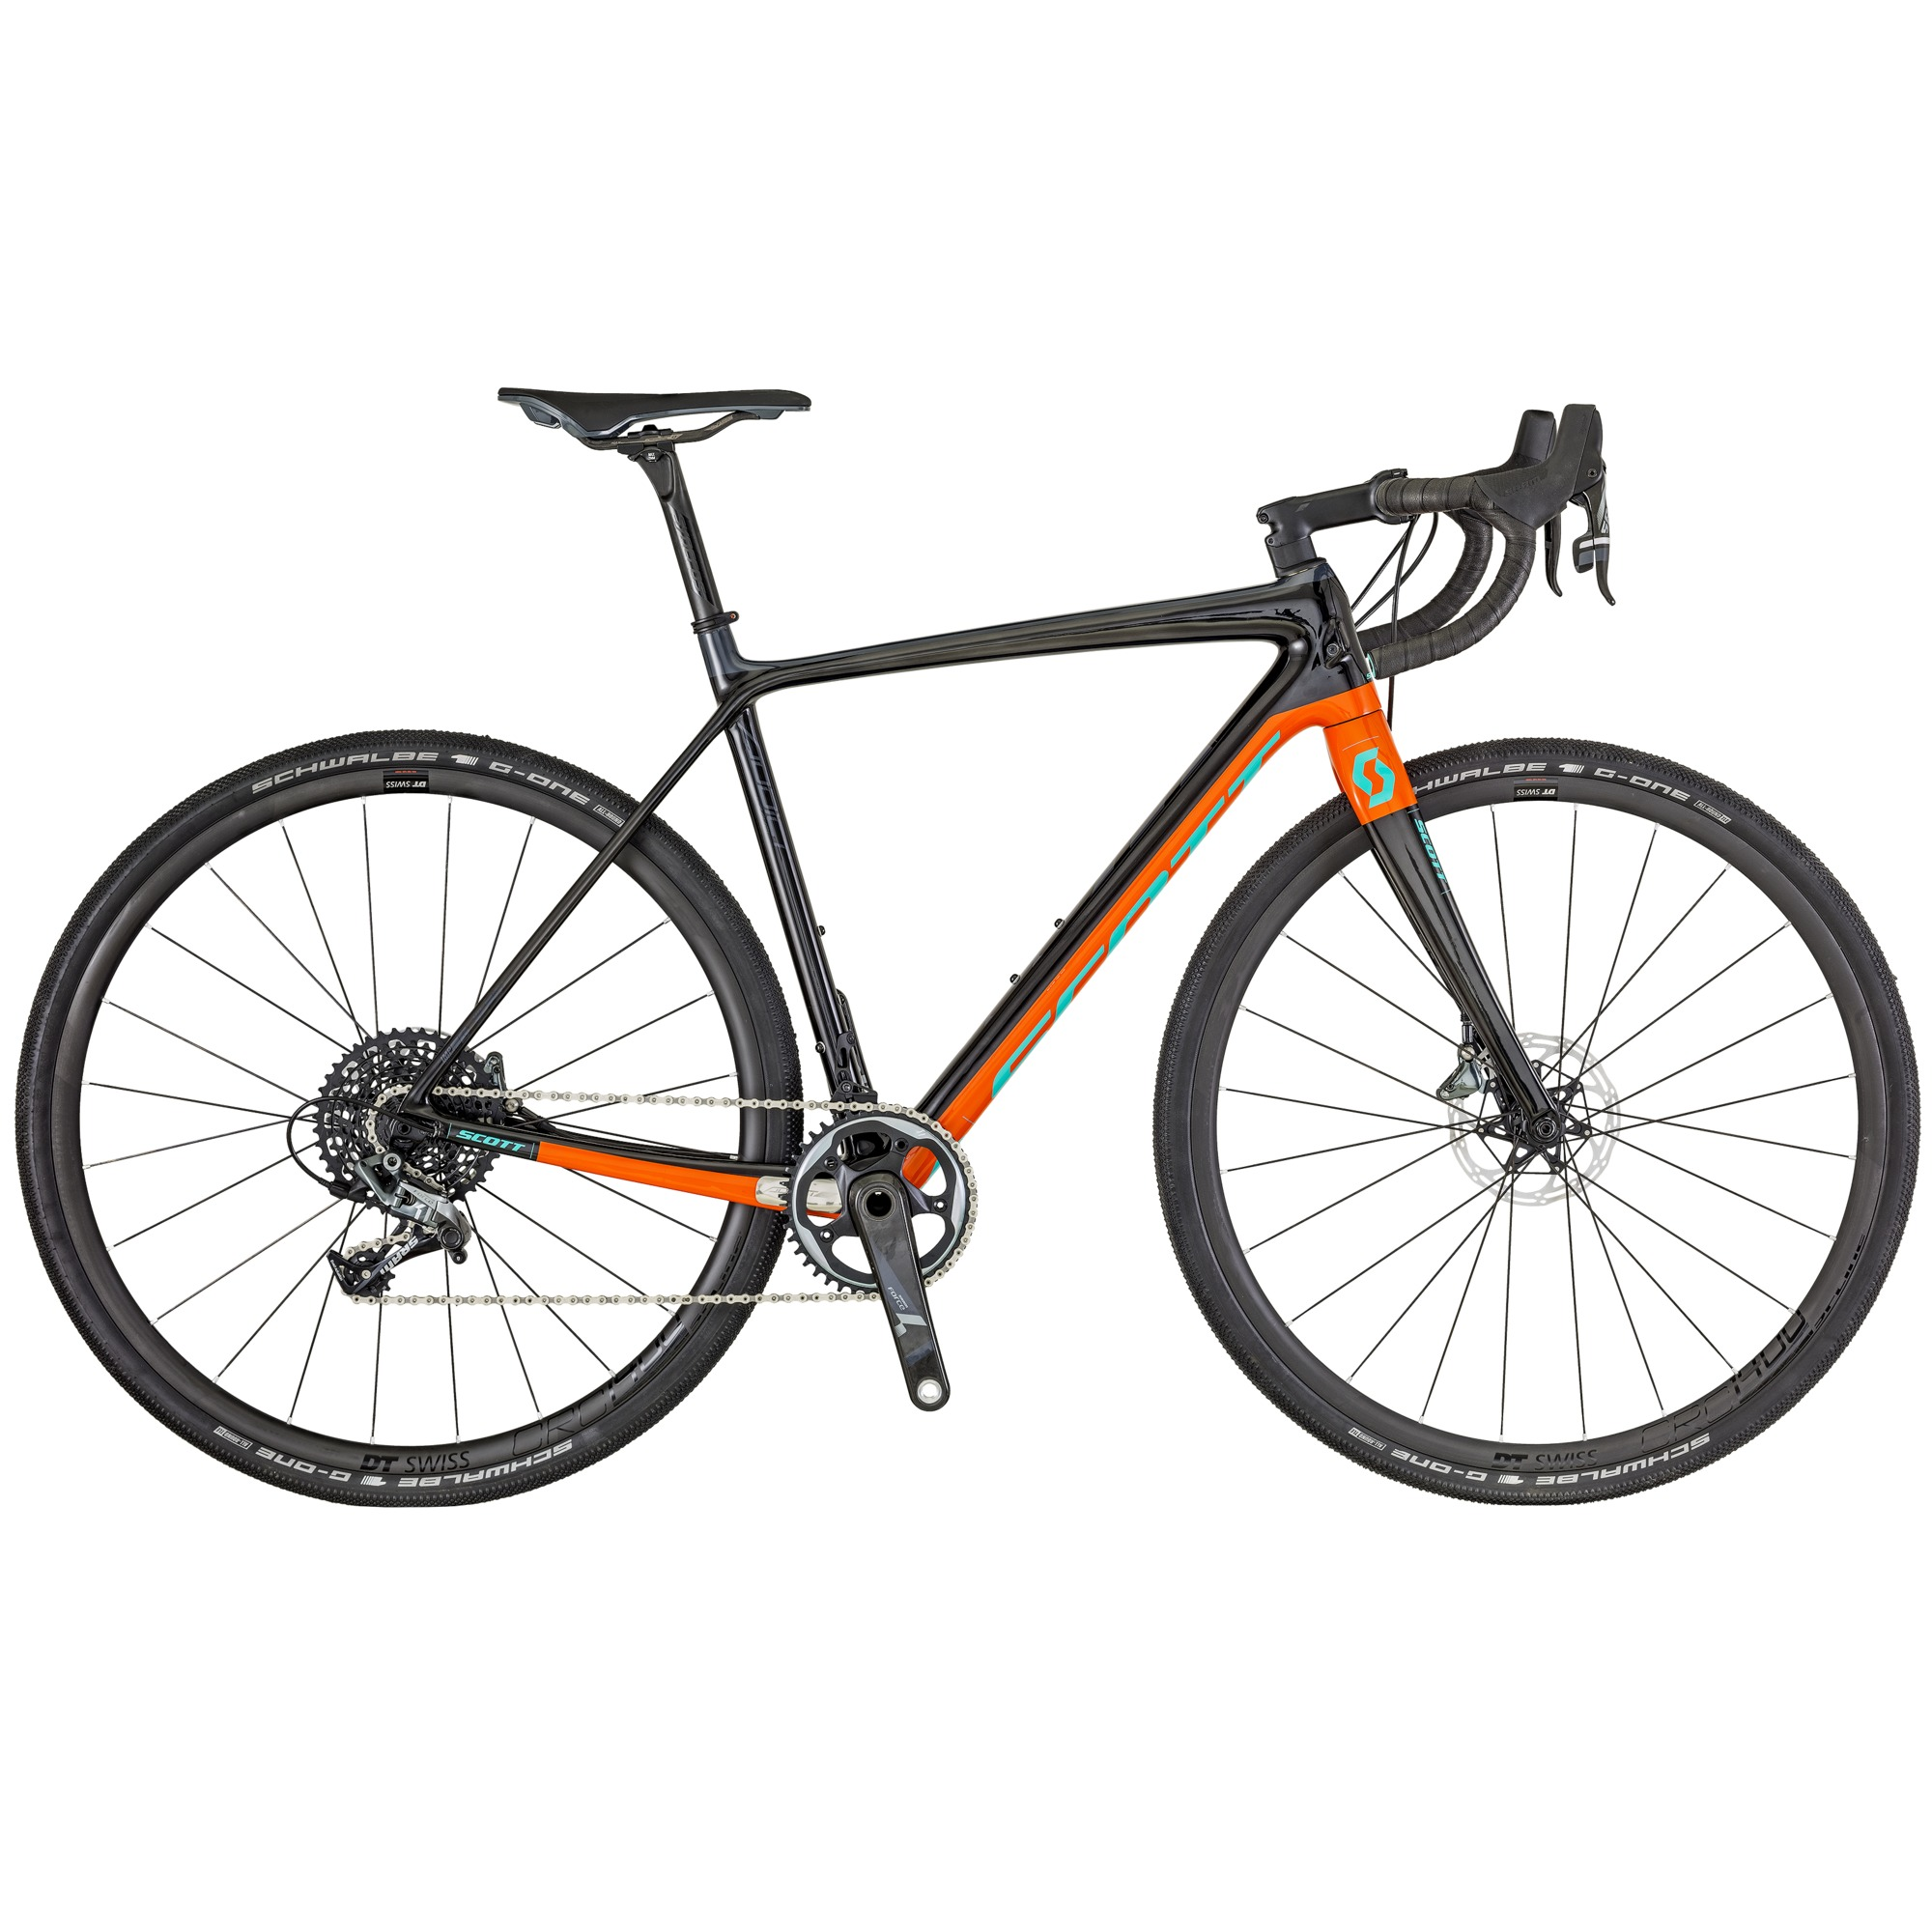 SCOTT Addict Gravel 10 Disc Bike M54 - Zweirad Homann